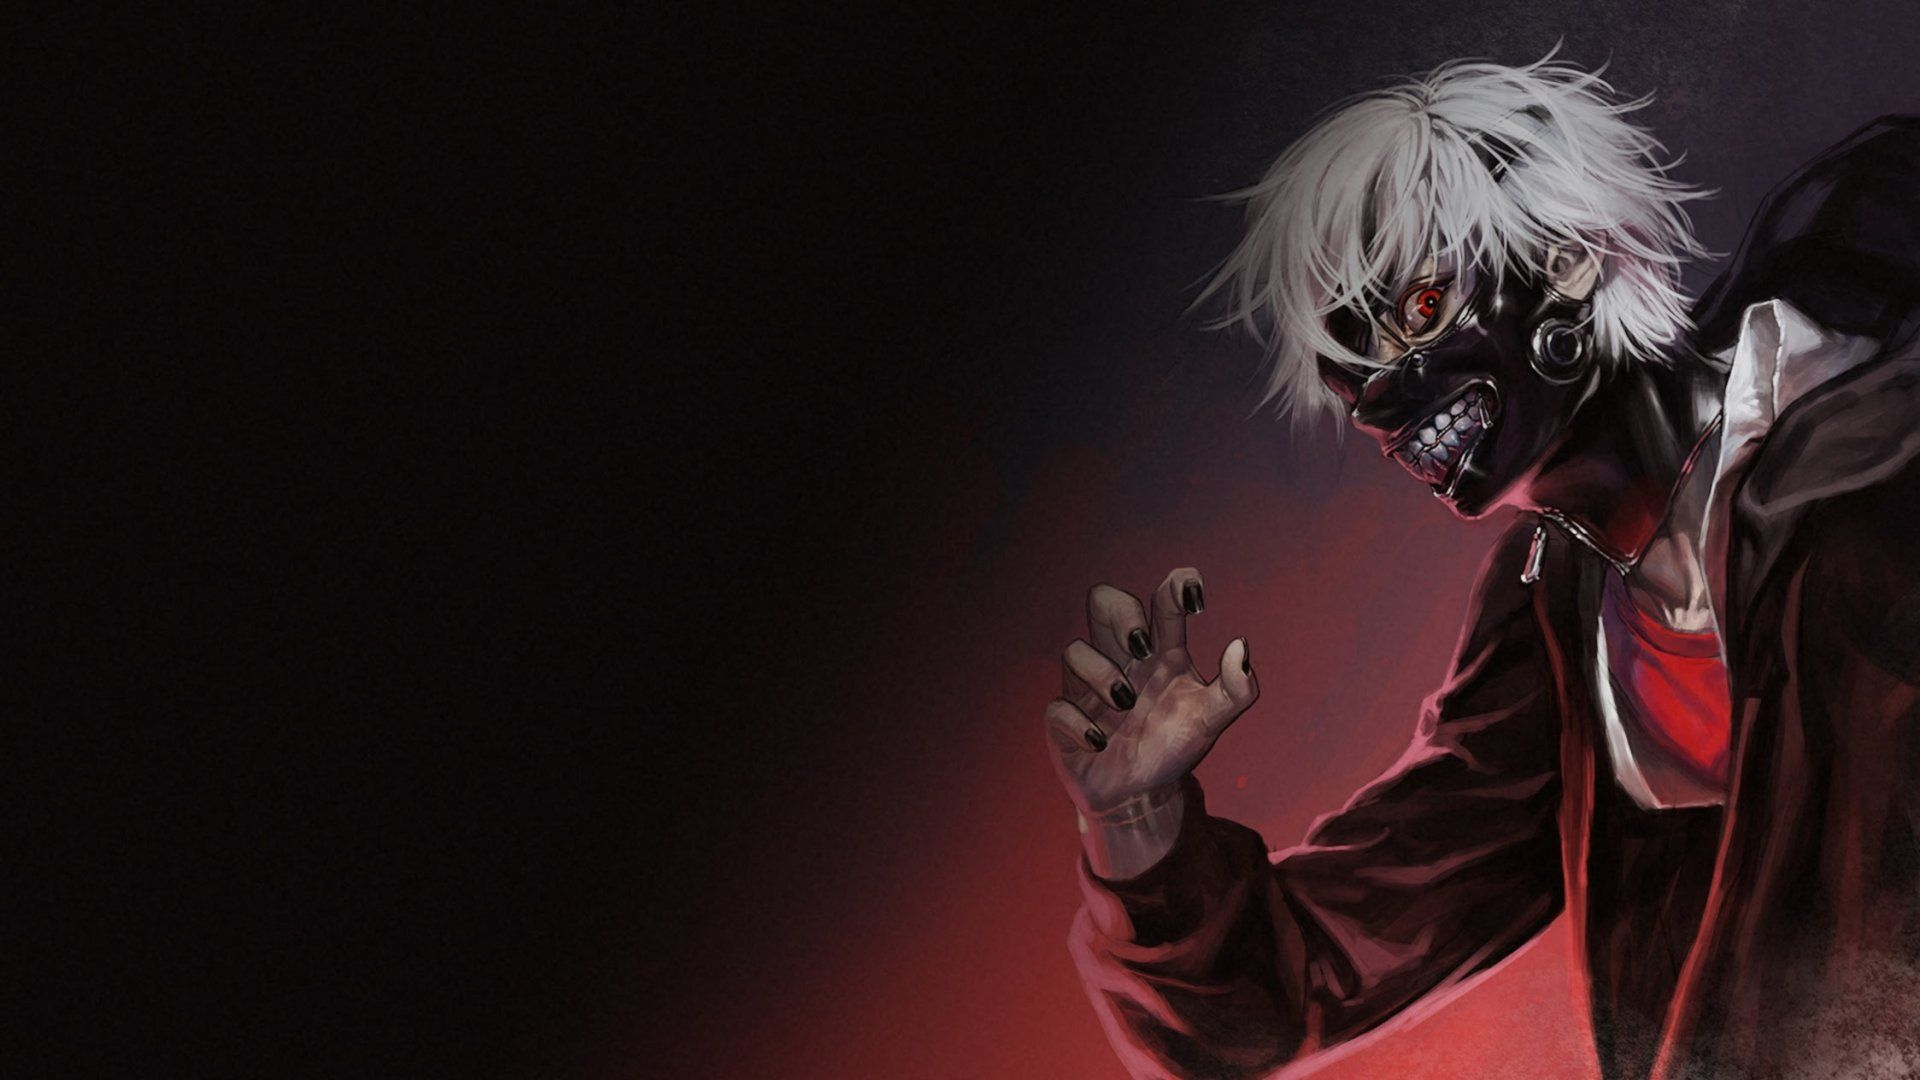 Tokyo Ghoul Hd Wallpapers Top Free Tokyo Ghoul Hd Backgrounds Wallpaperaccess